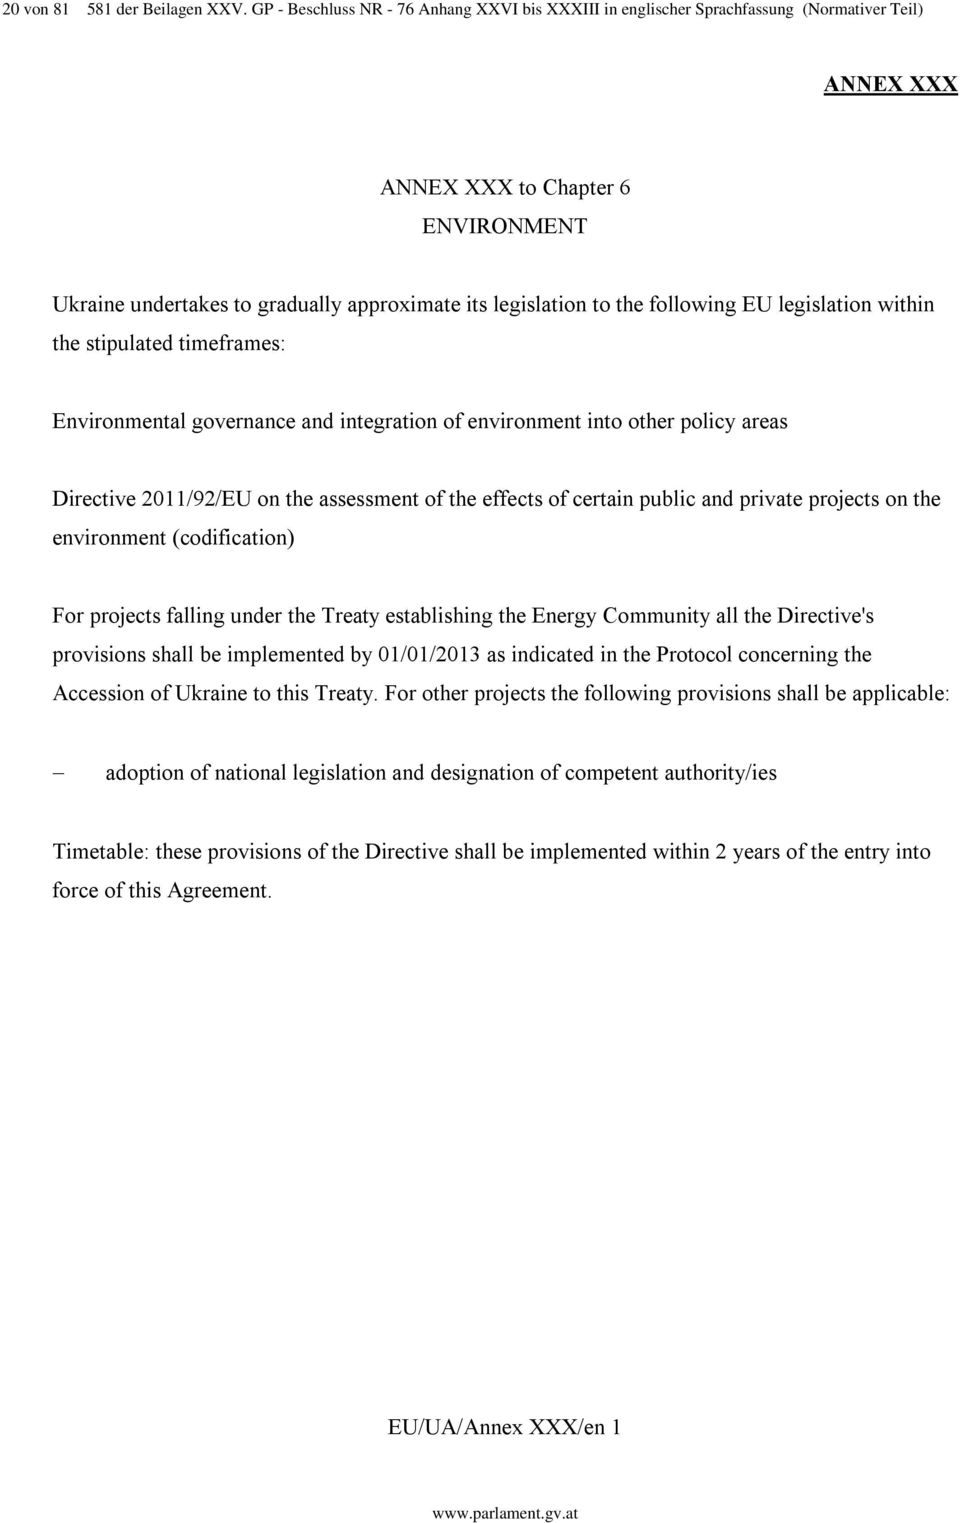 projects falling under the Treaty establishing the Energy Community all the Directive's provisions shall be implemented by 01/01/2013 as indicated in the Protocol concerning the Accession of Ukraine